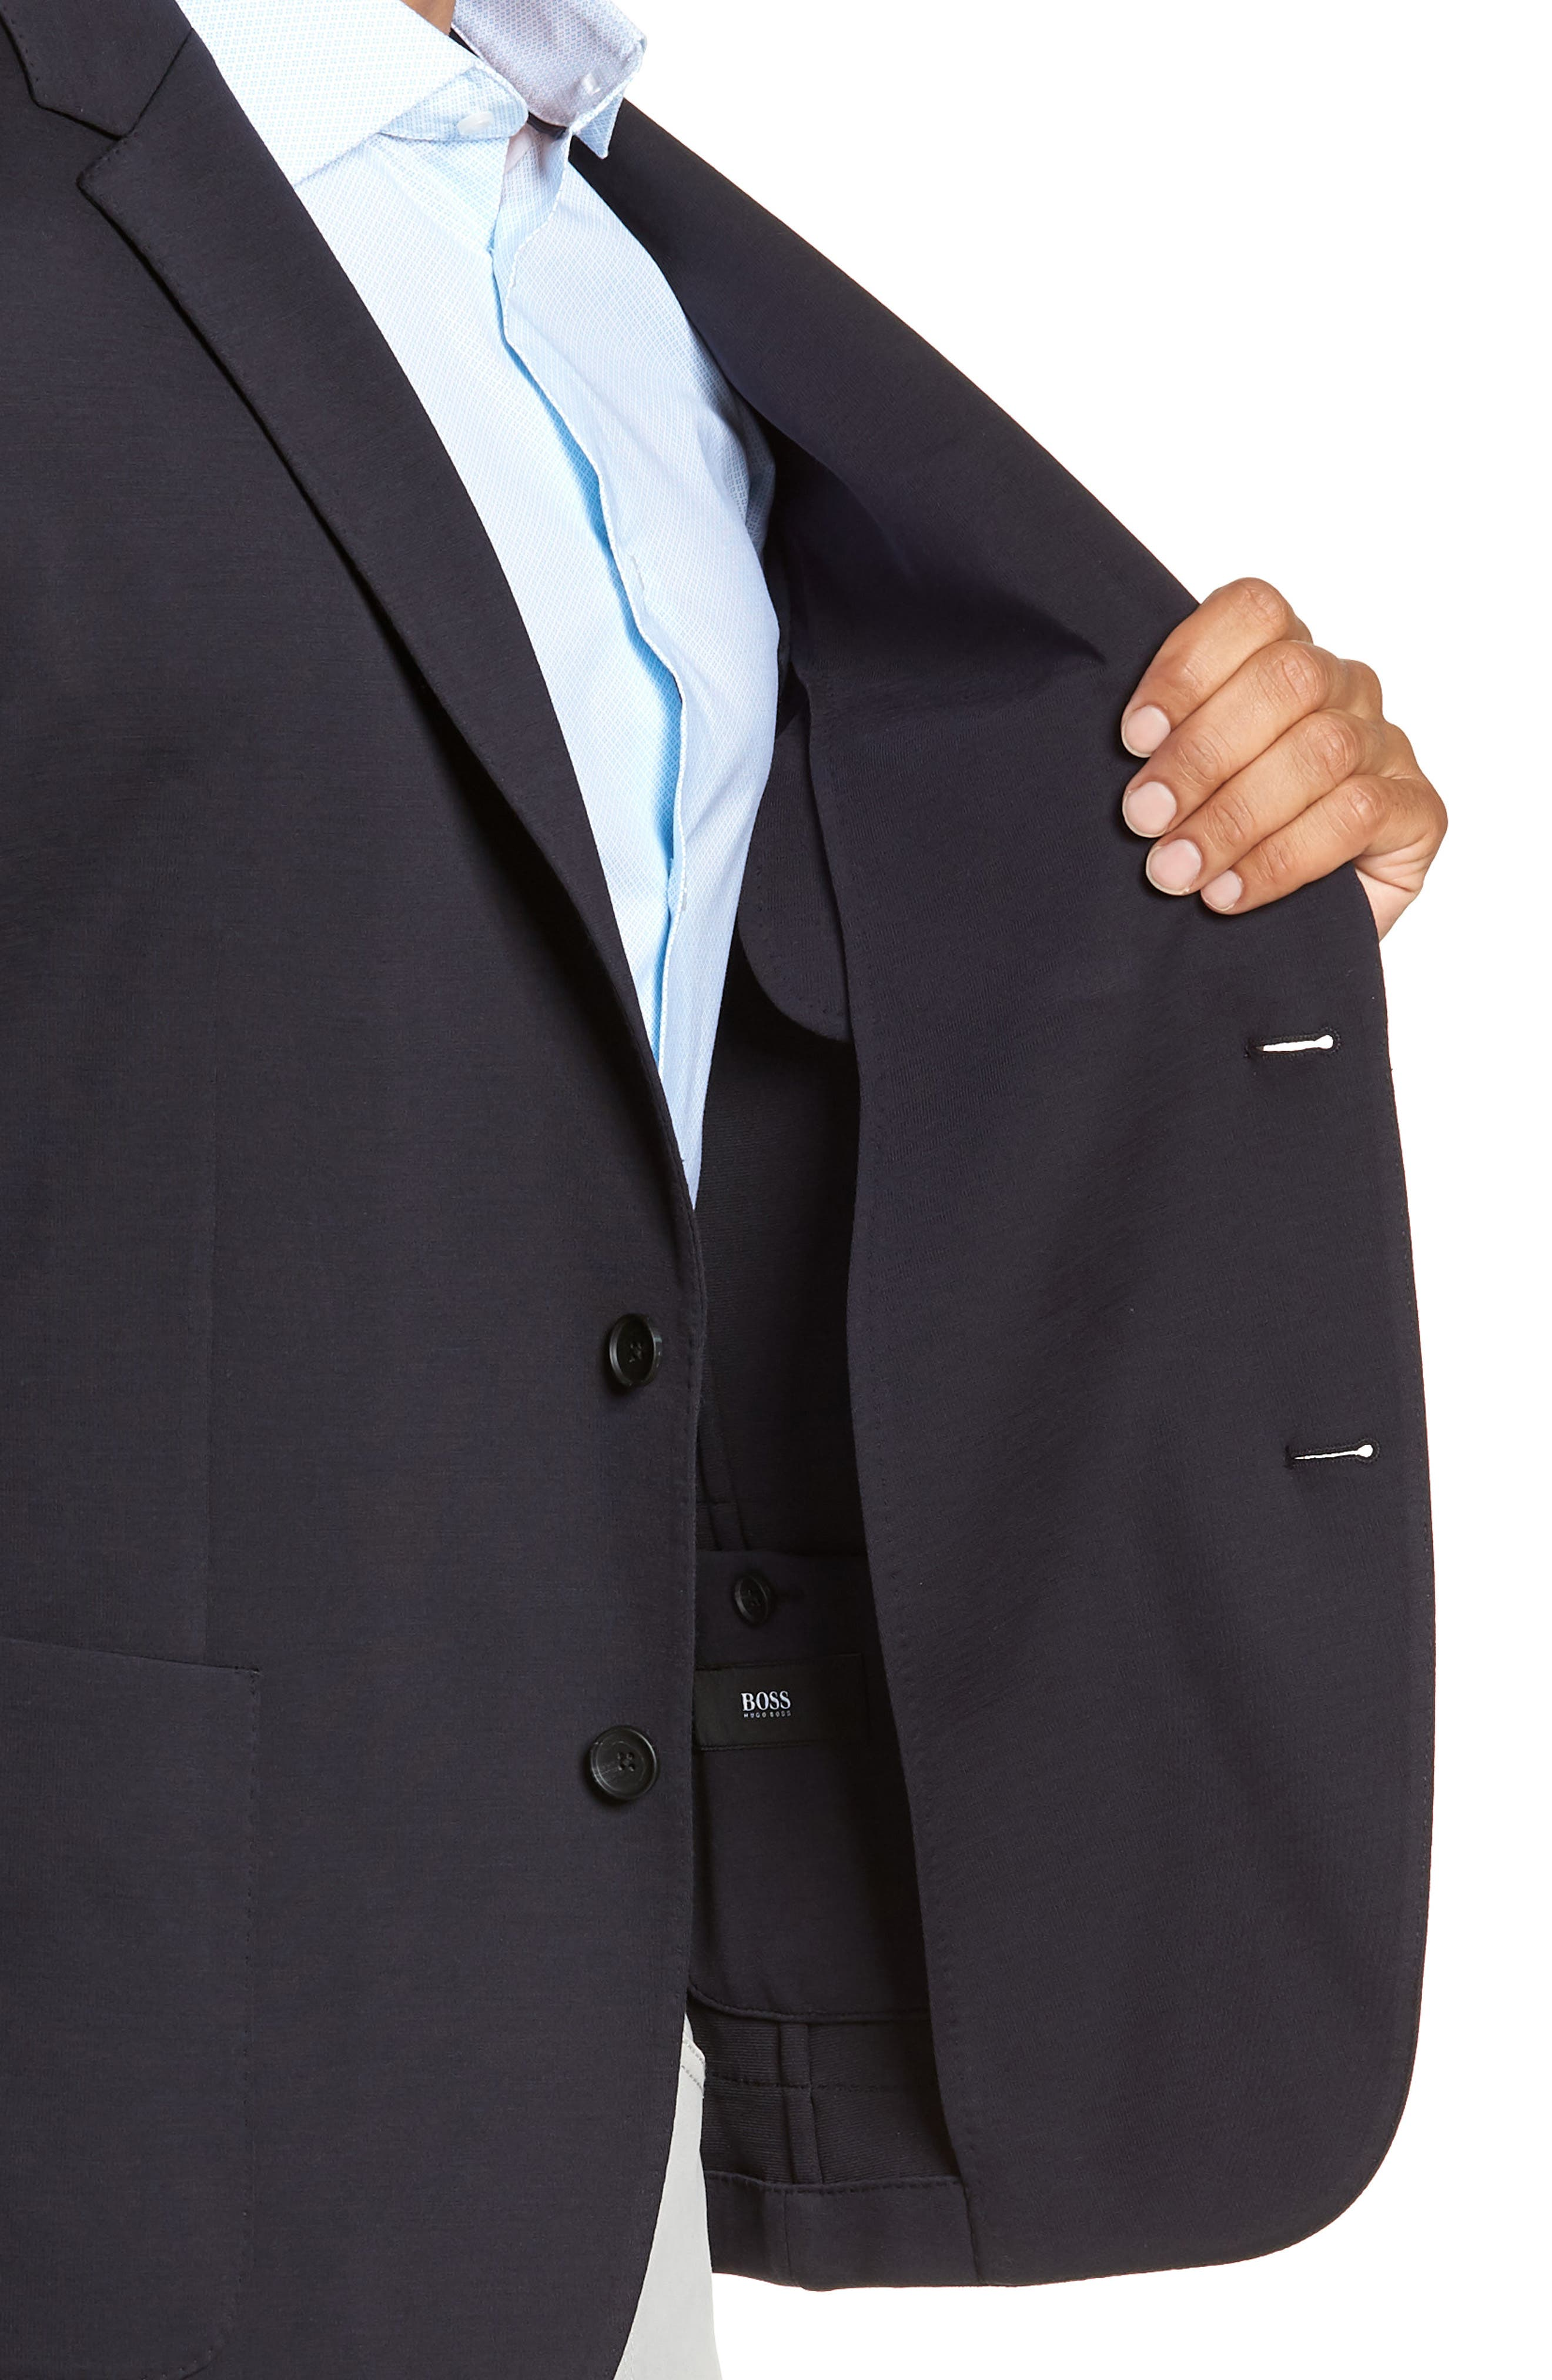 BOSS,                             Nold Trim Fit Stretch Wool Blend Sport Coat,                             Alternate thumbnail 4, color,                             OPEN BLUE